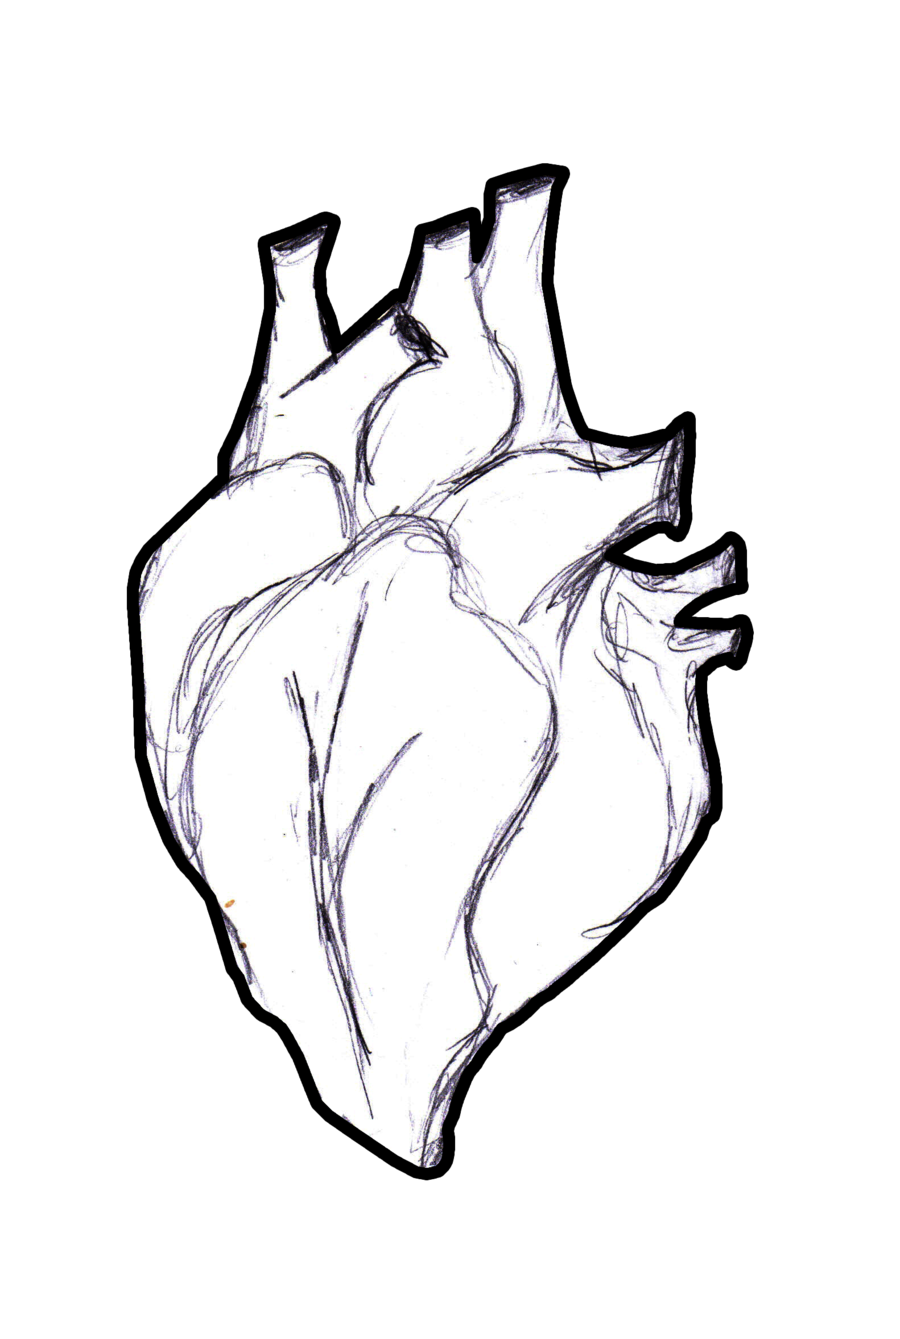 Human heart drawing png. Real at getdrawings com